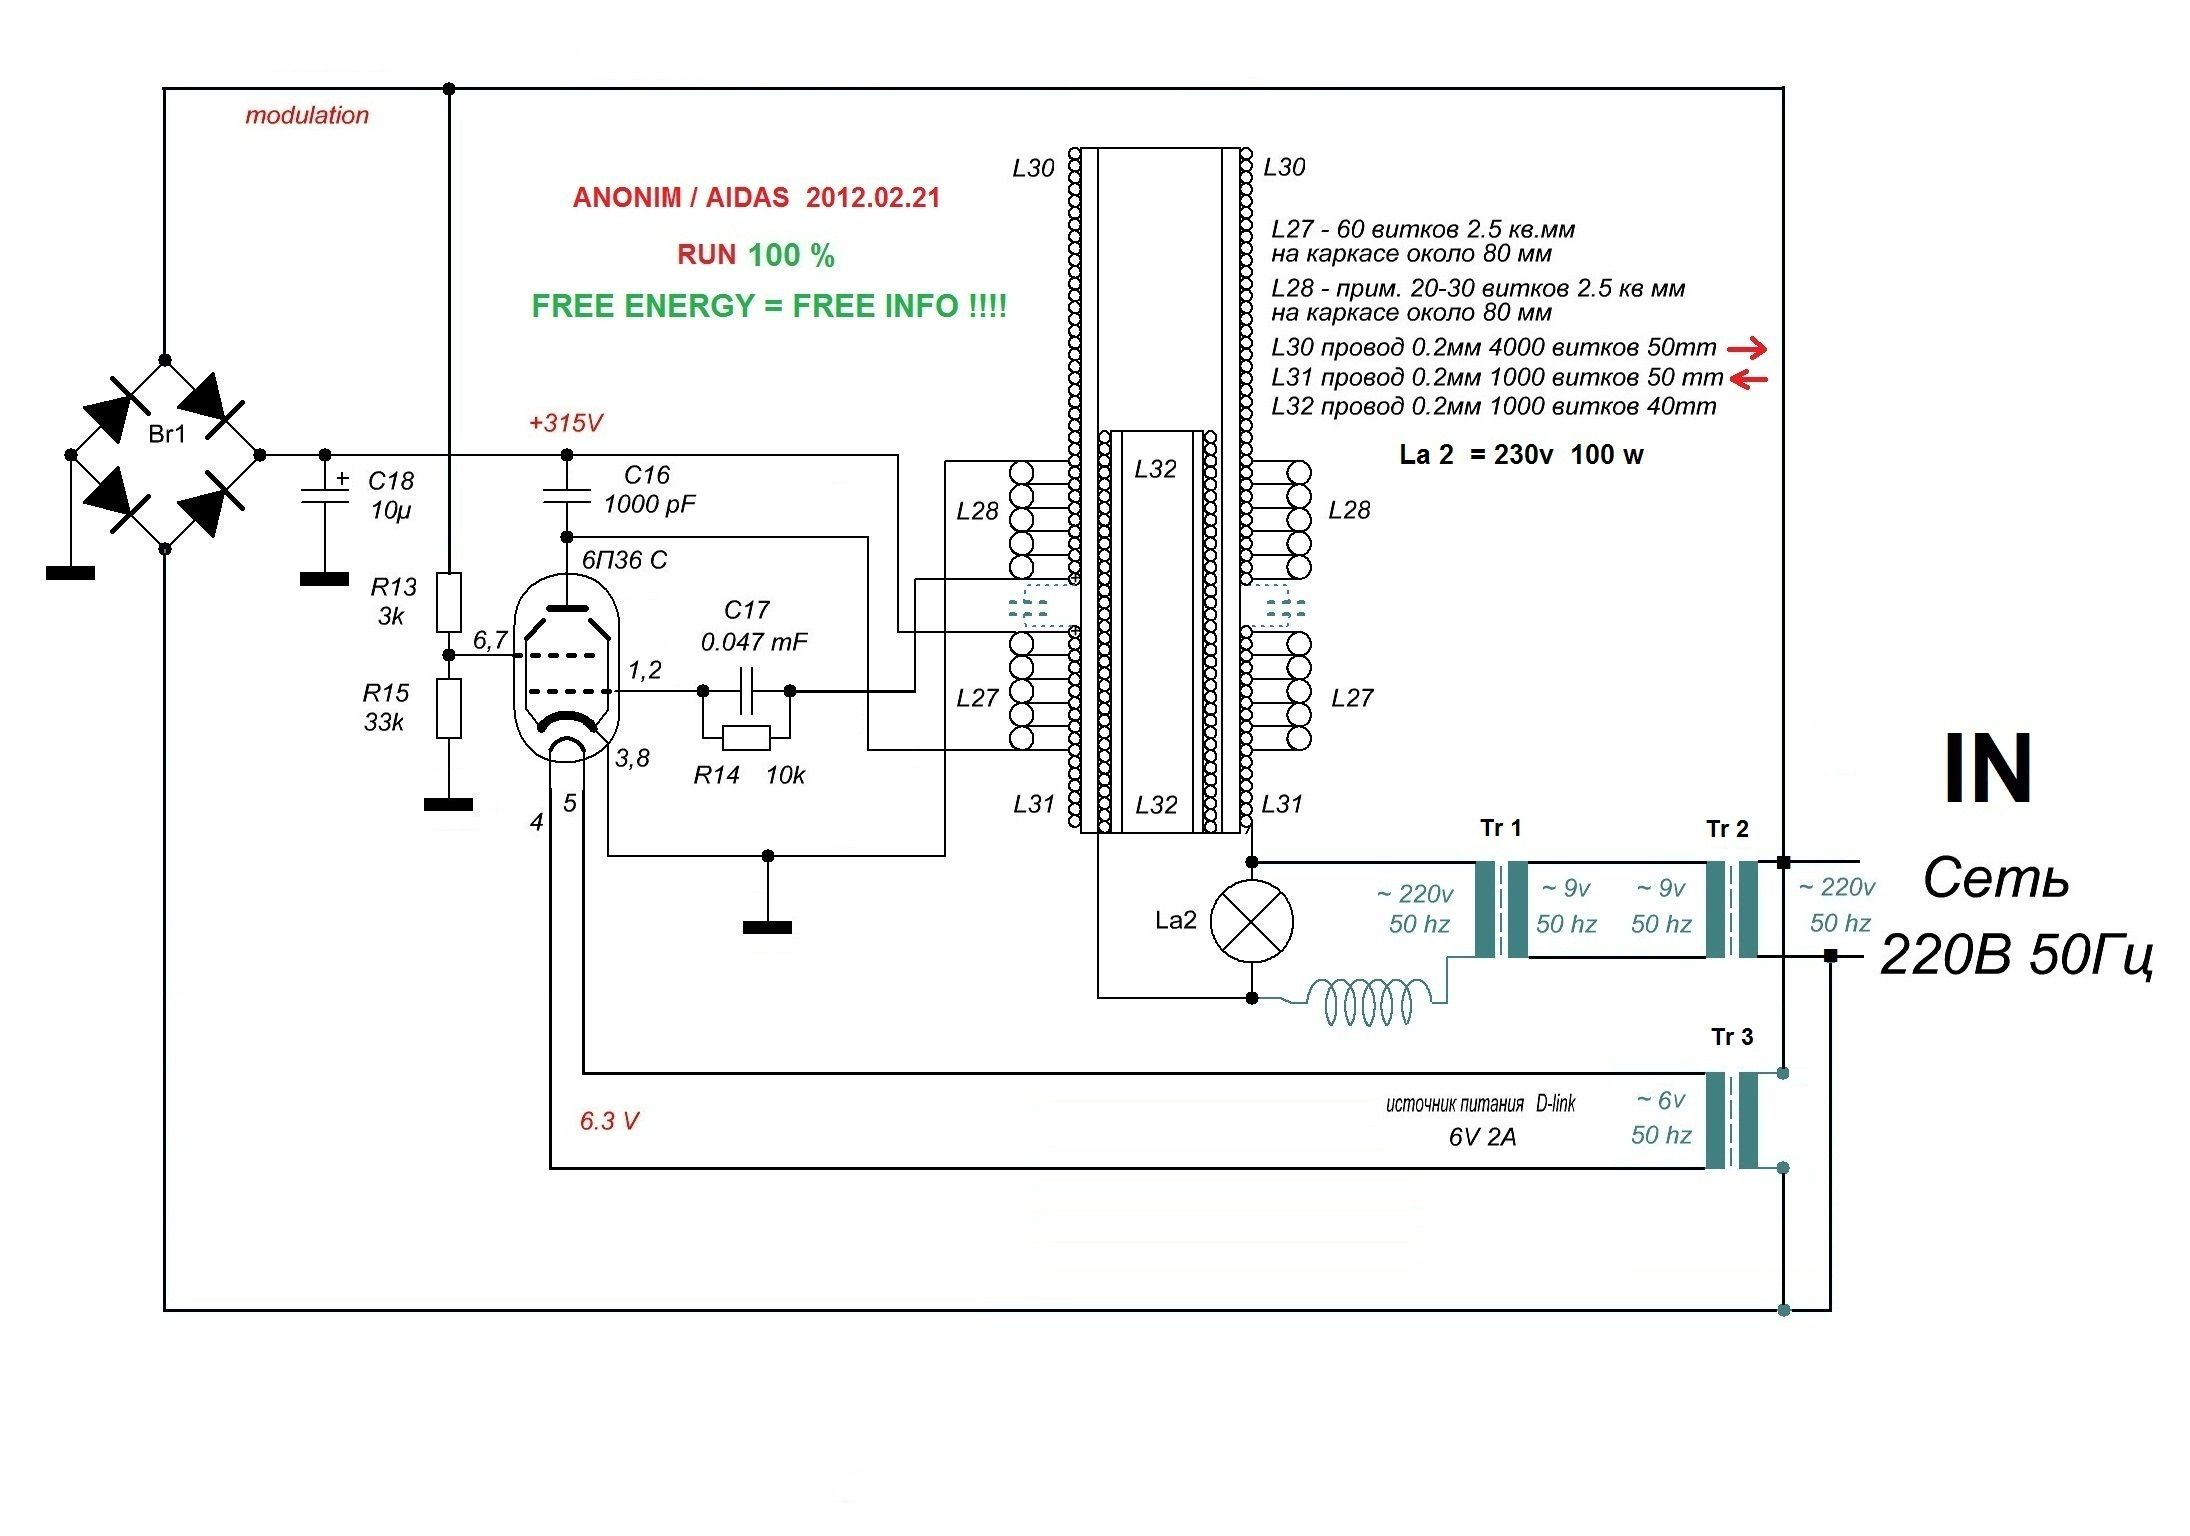 circuit breaker circuit diagram re selfrunning free energy devices up to 5 kw from tariel